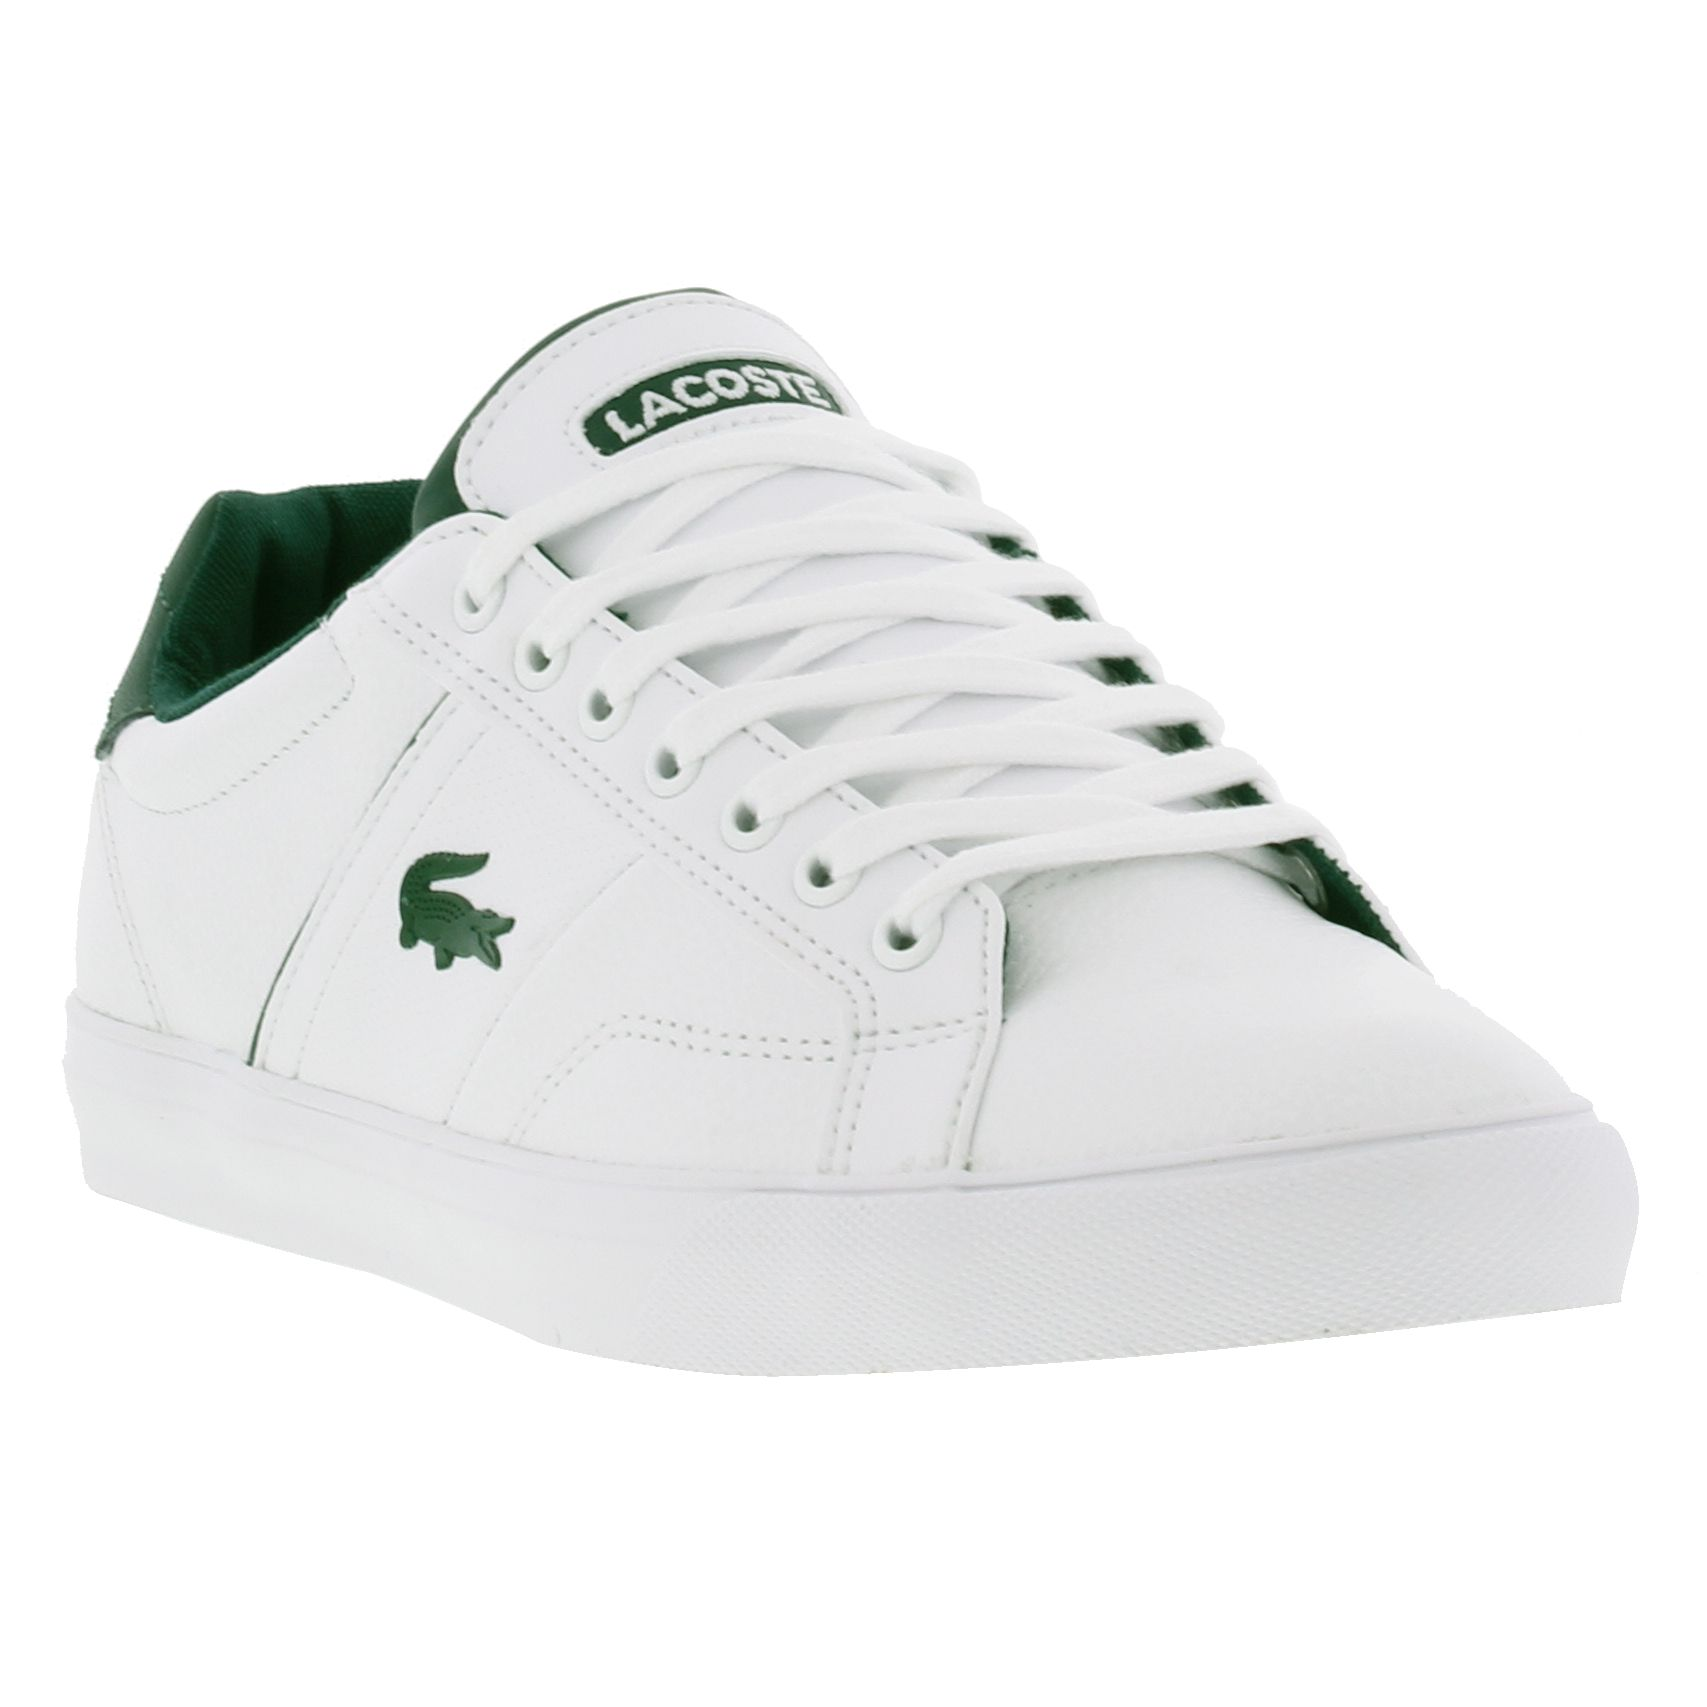 lacoste fairlead rei mens shoes white leather trainers ebay